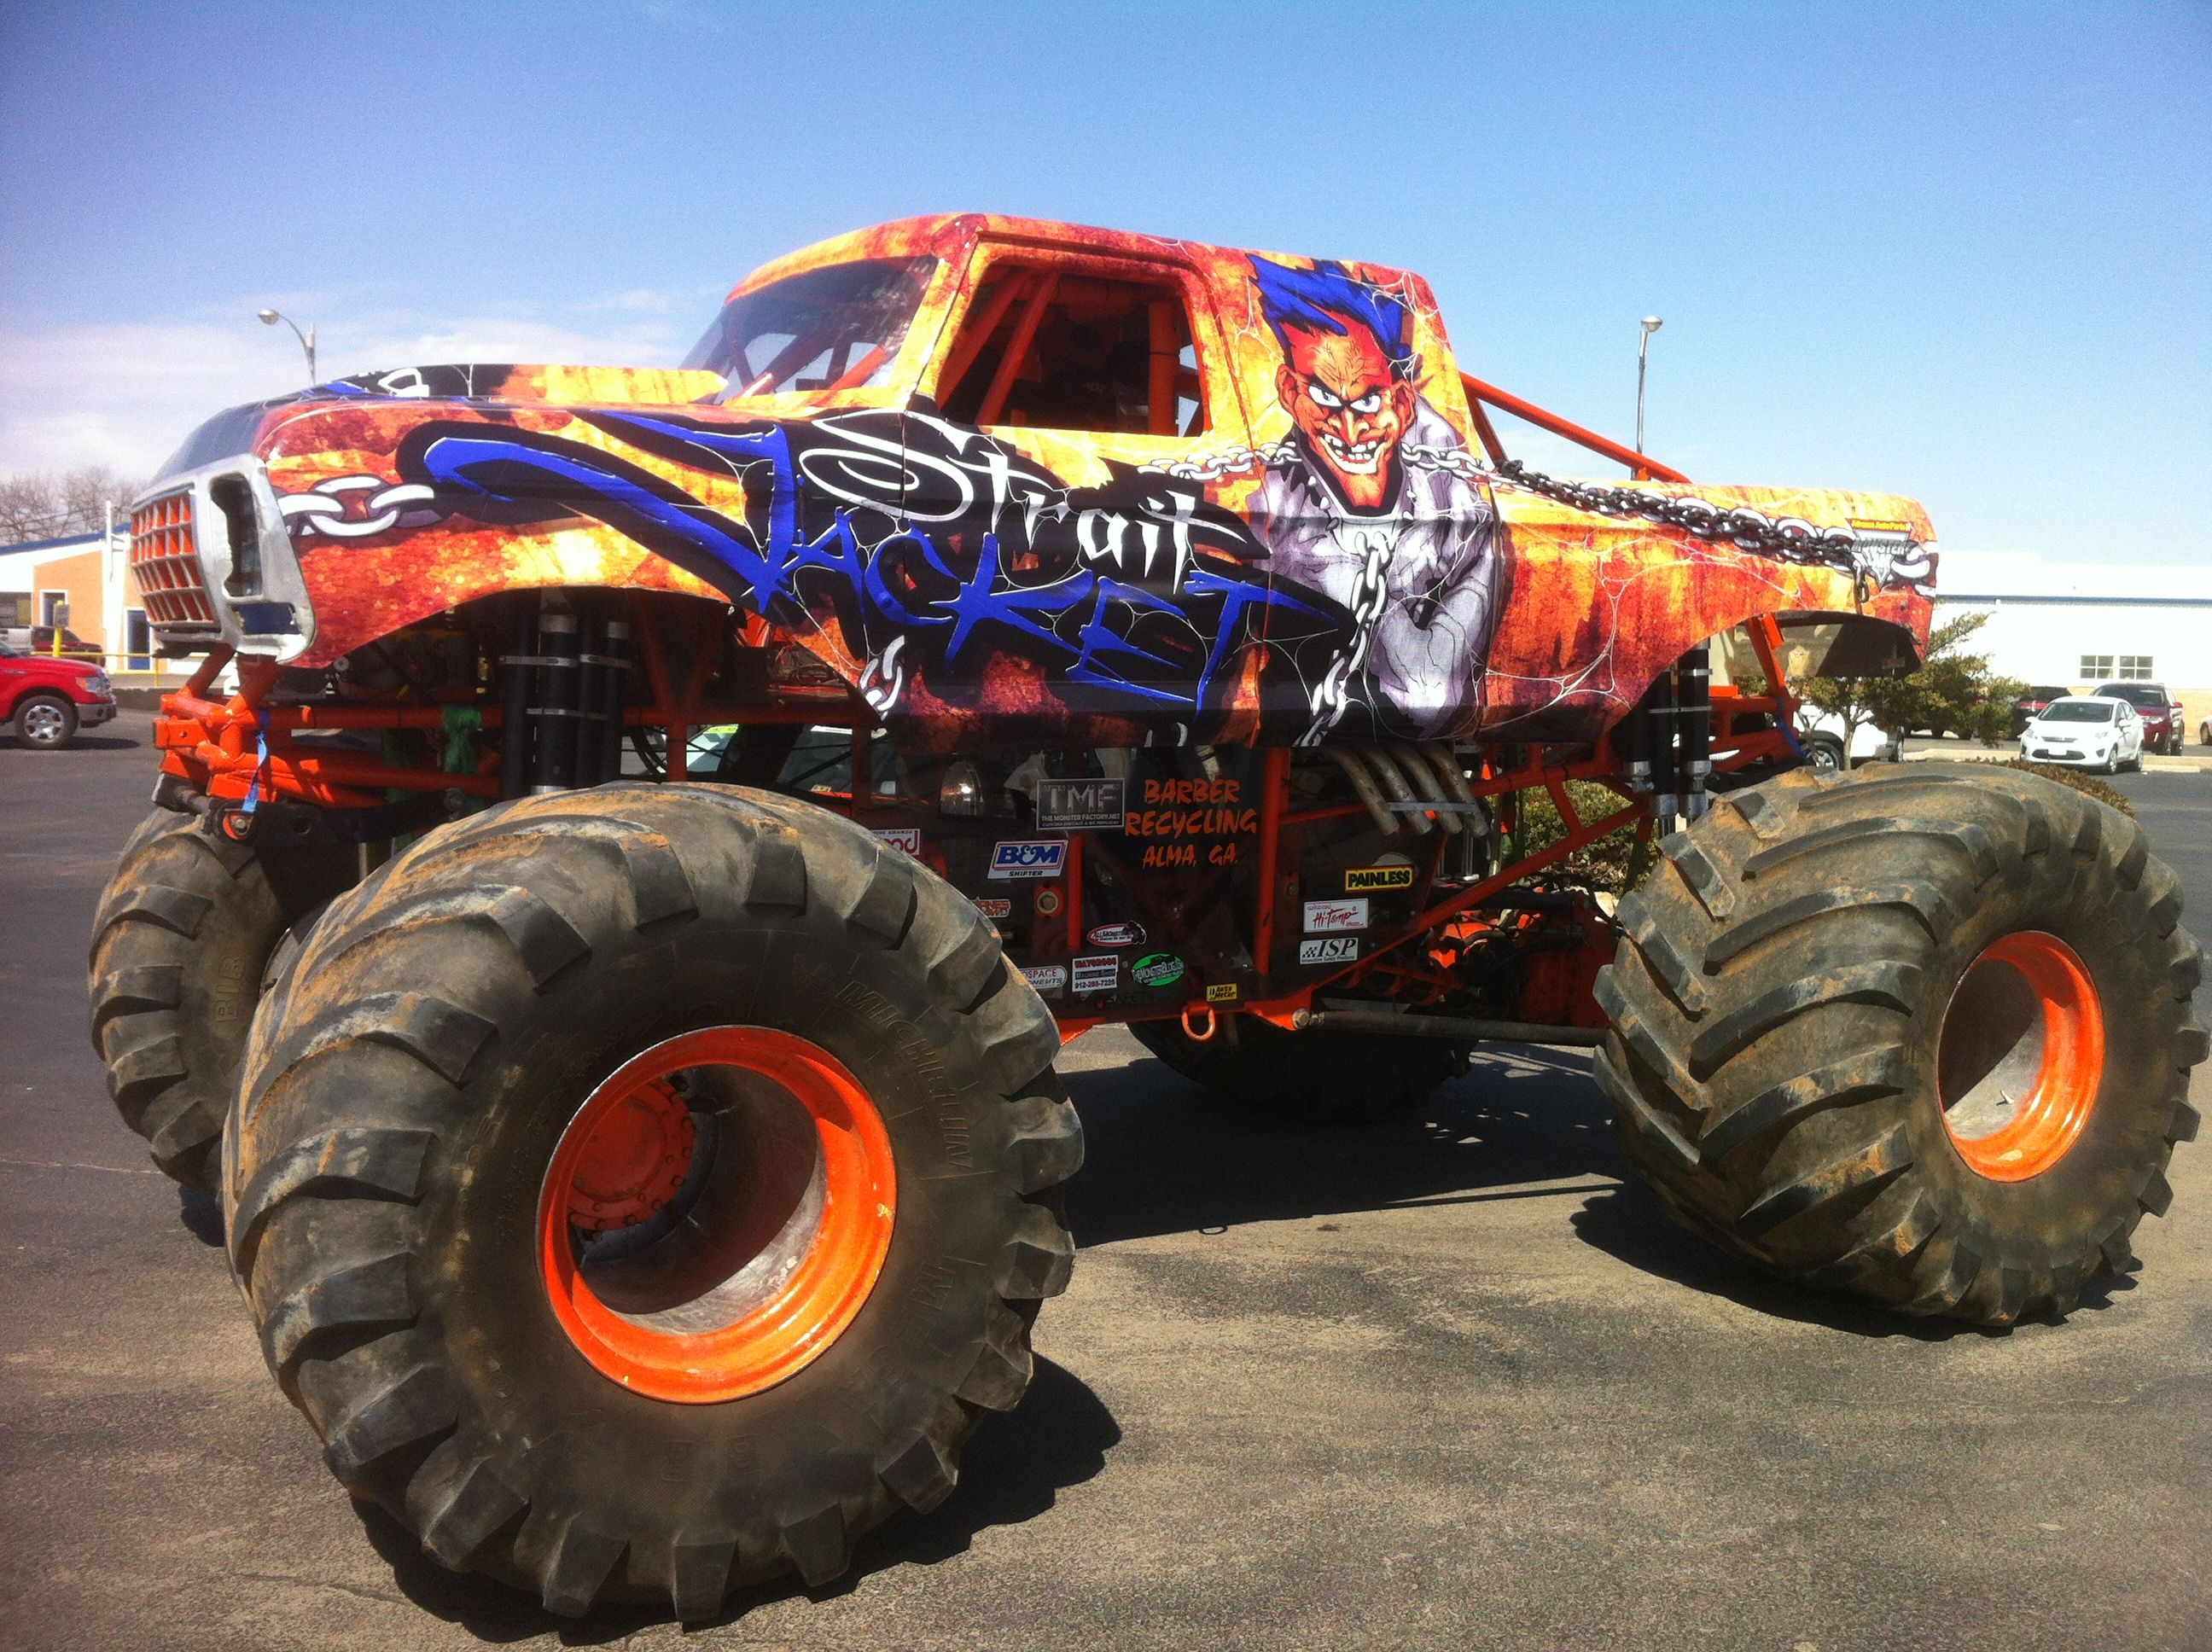 Straight Jacket monster truck. Quite colorful and very ...